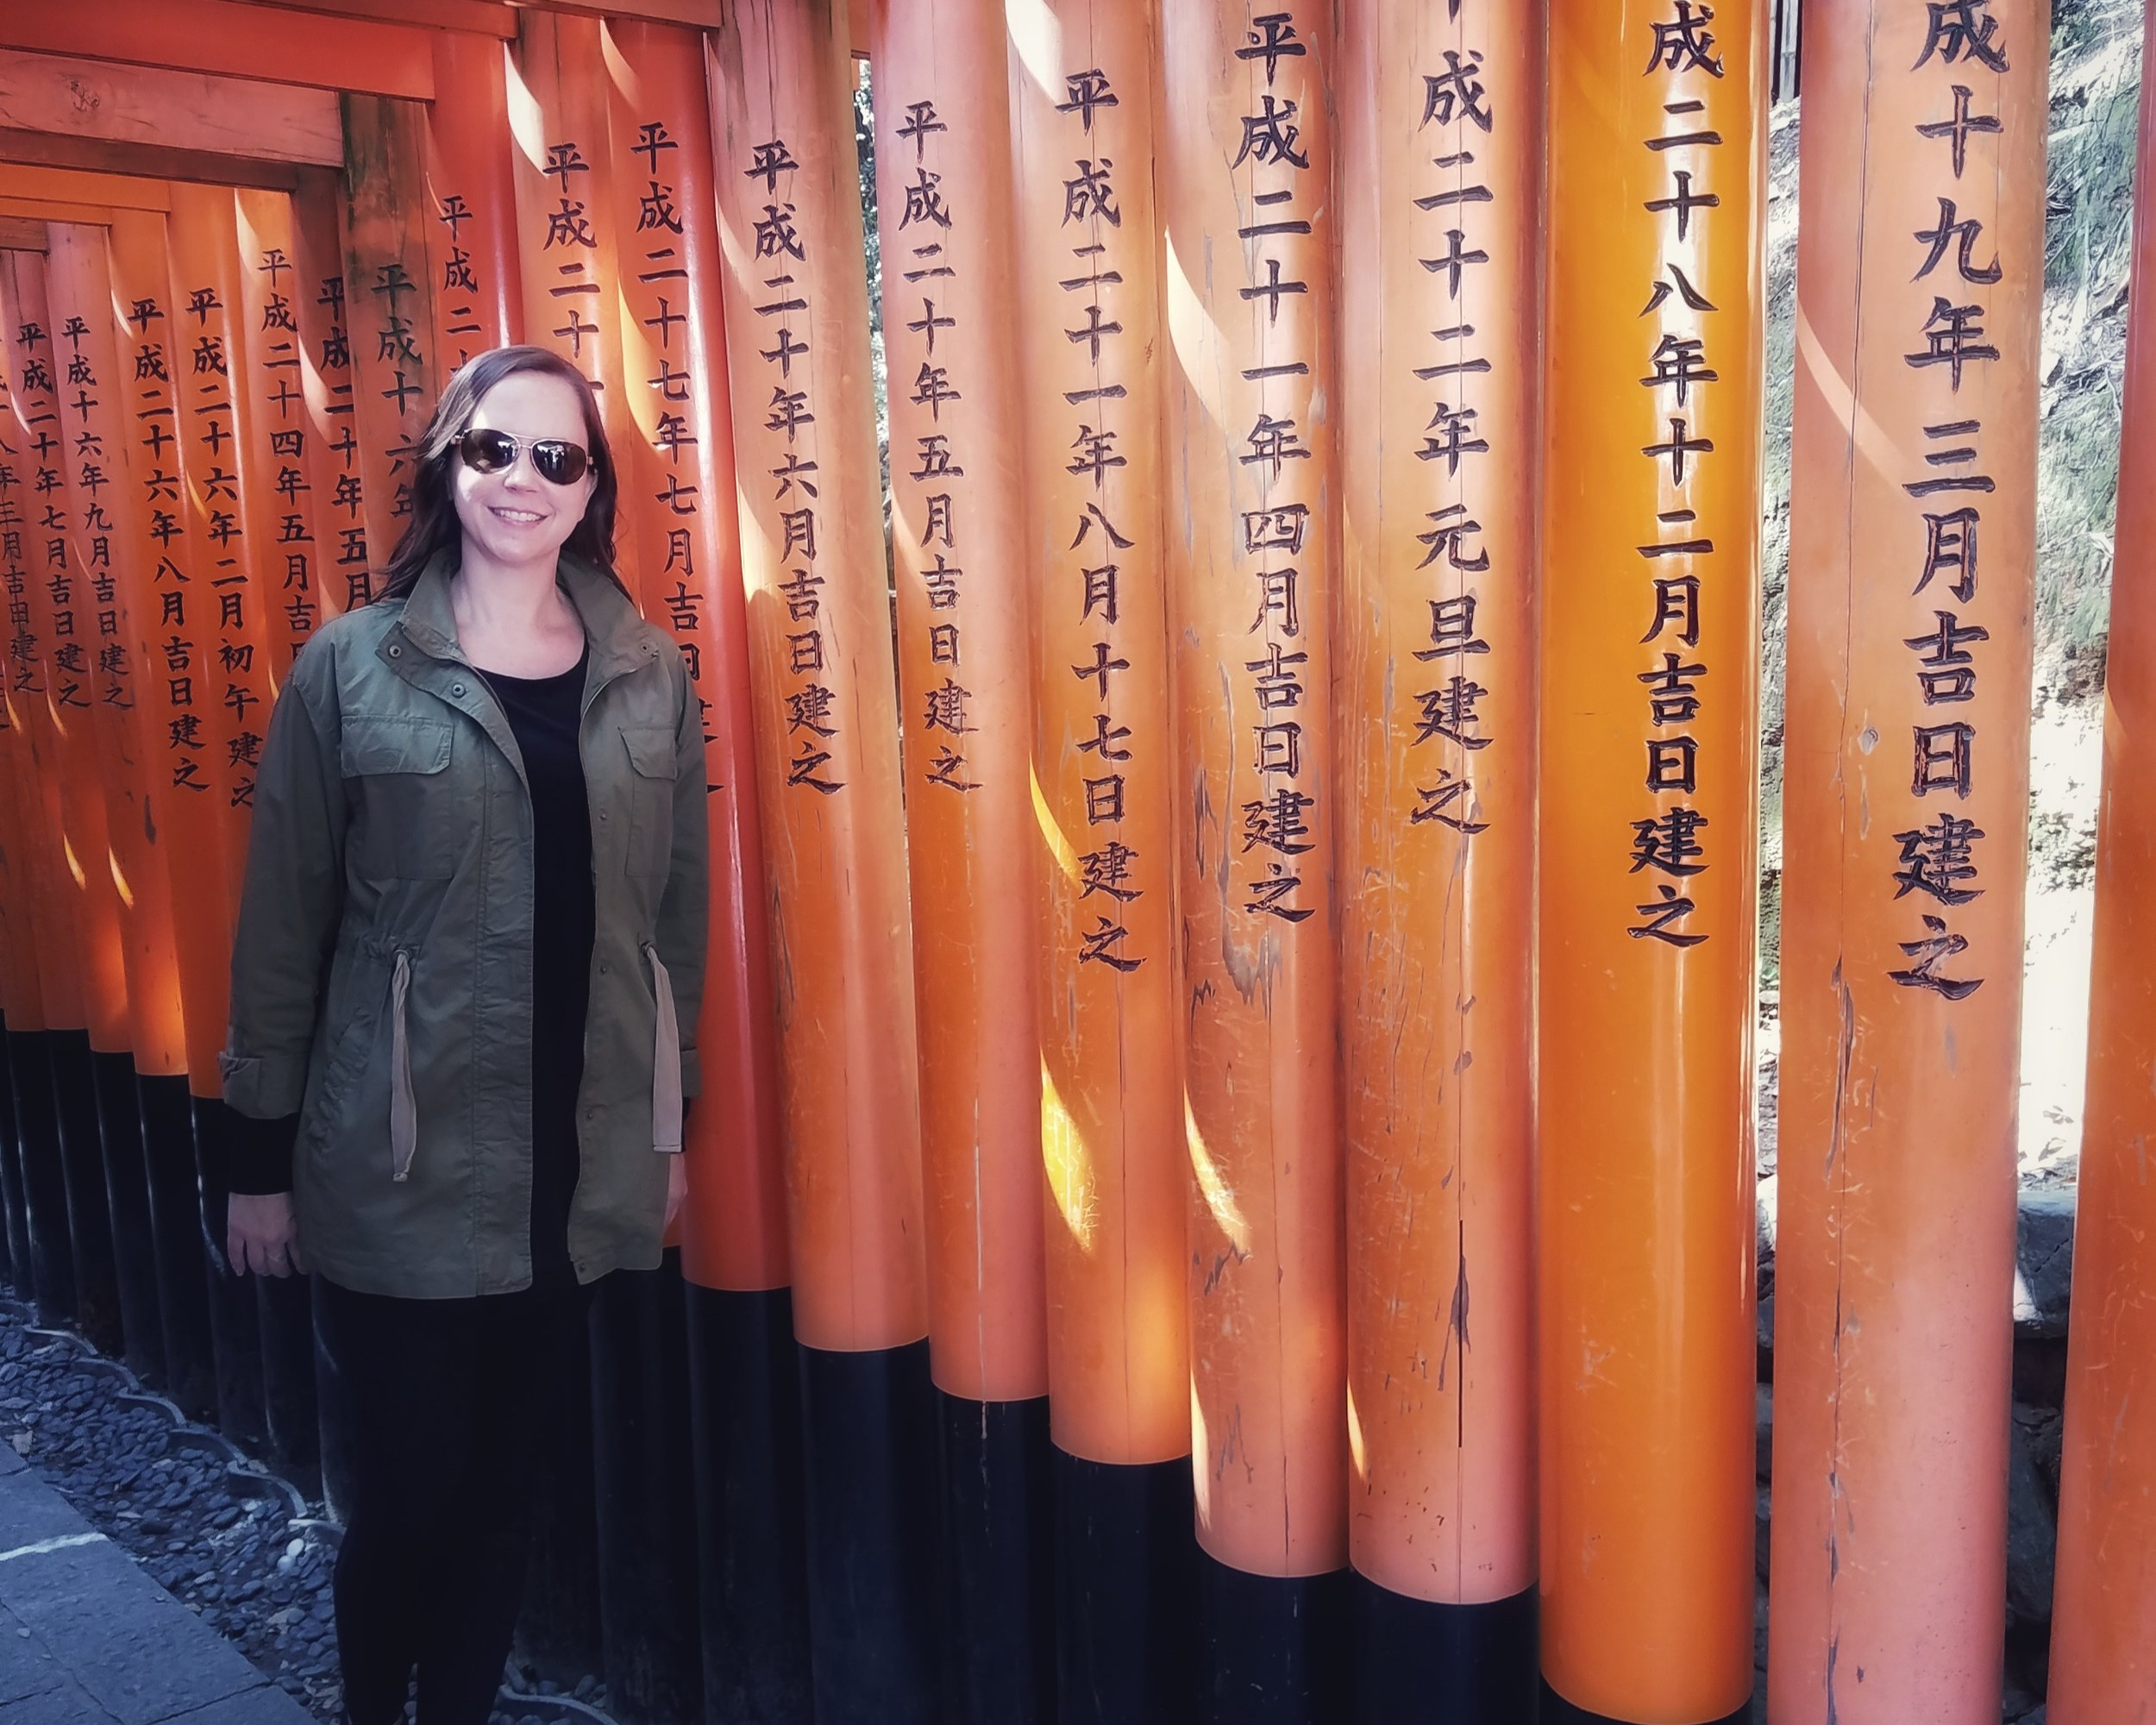 At the Torii Gates in Japan